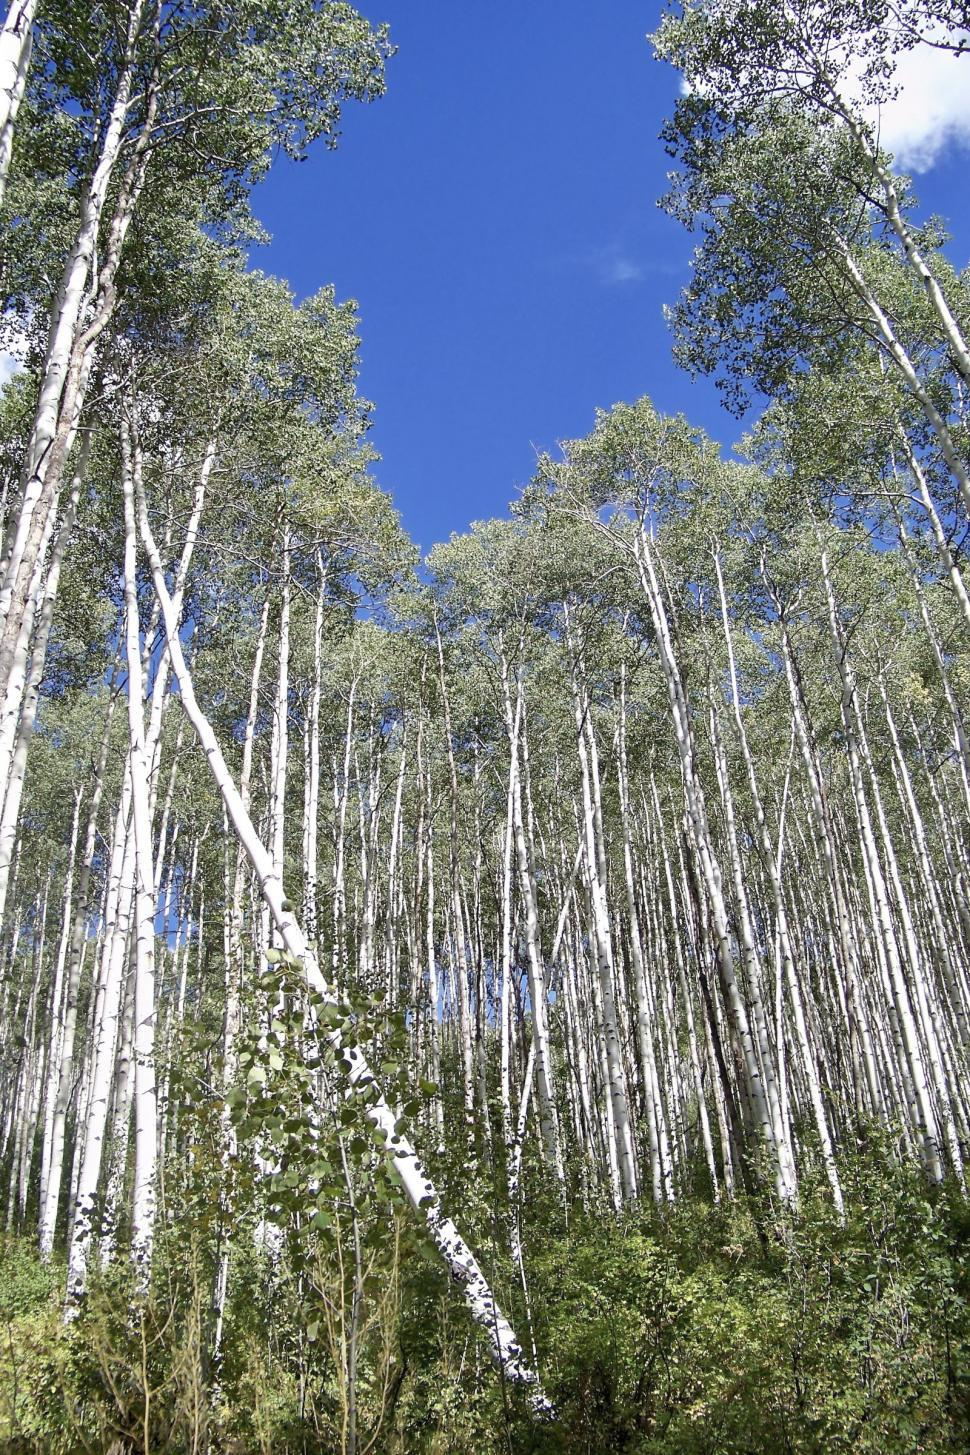 Download Free Stock HD Photo of aspen forest 3 Online